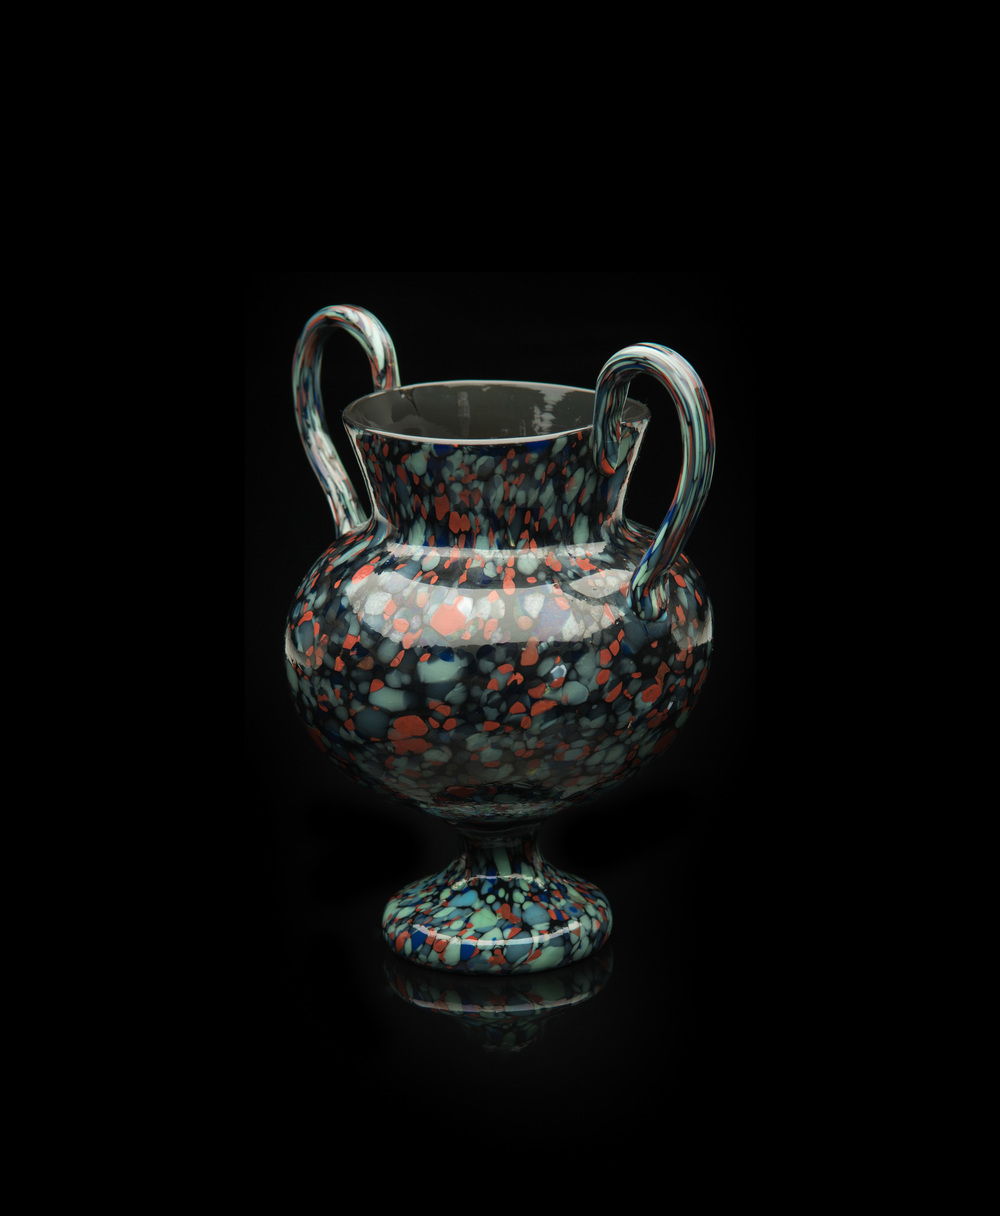 Francesco Ferro e Figlio,  Vase with Applied Handles and Polychrome Inclusions  (glass, 7 1/4 x 6 1/2 x 4 3/4 inches), VV.535